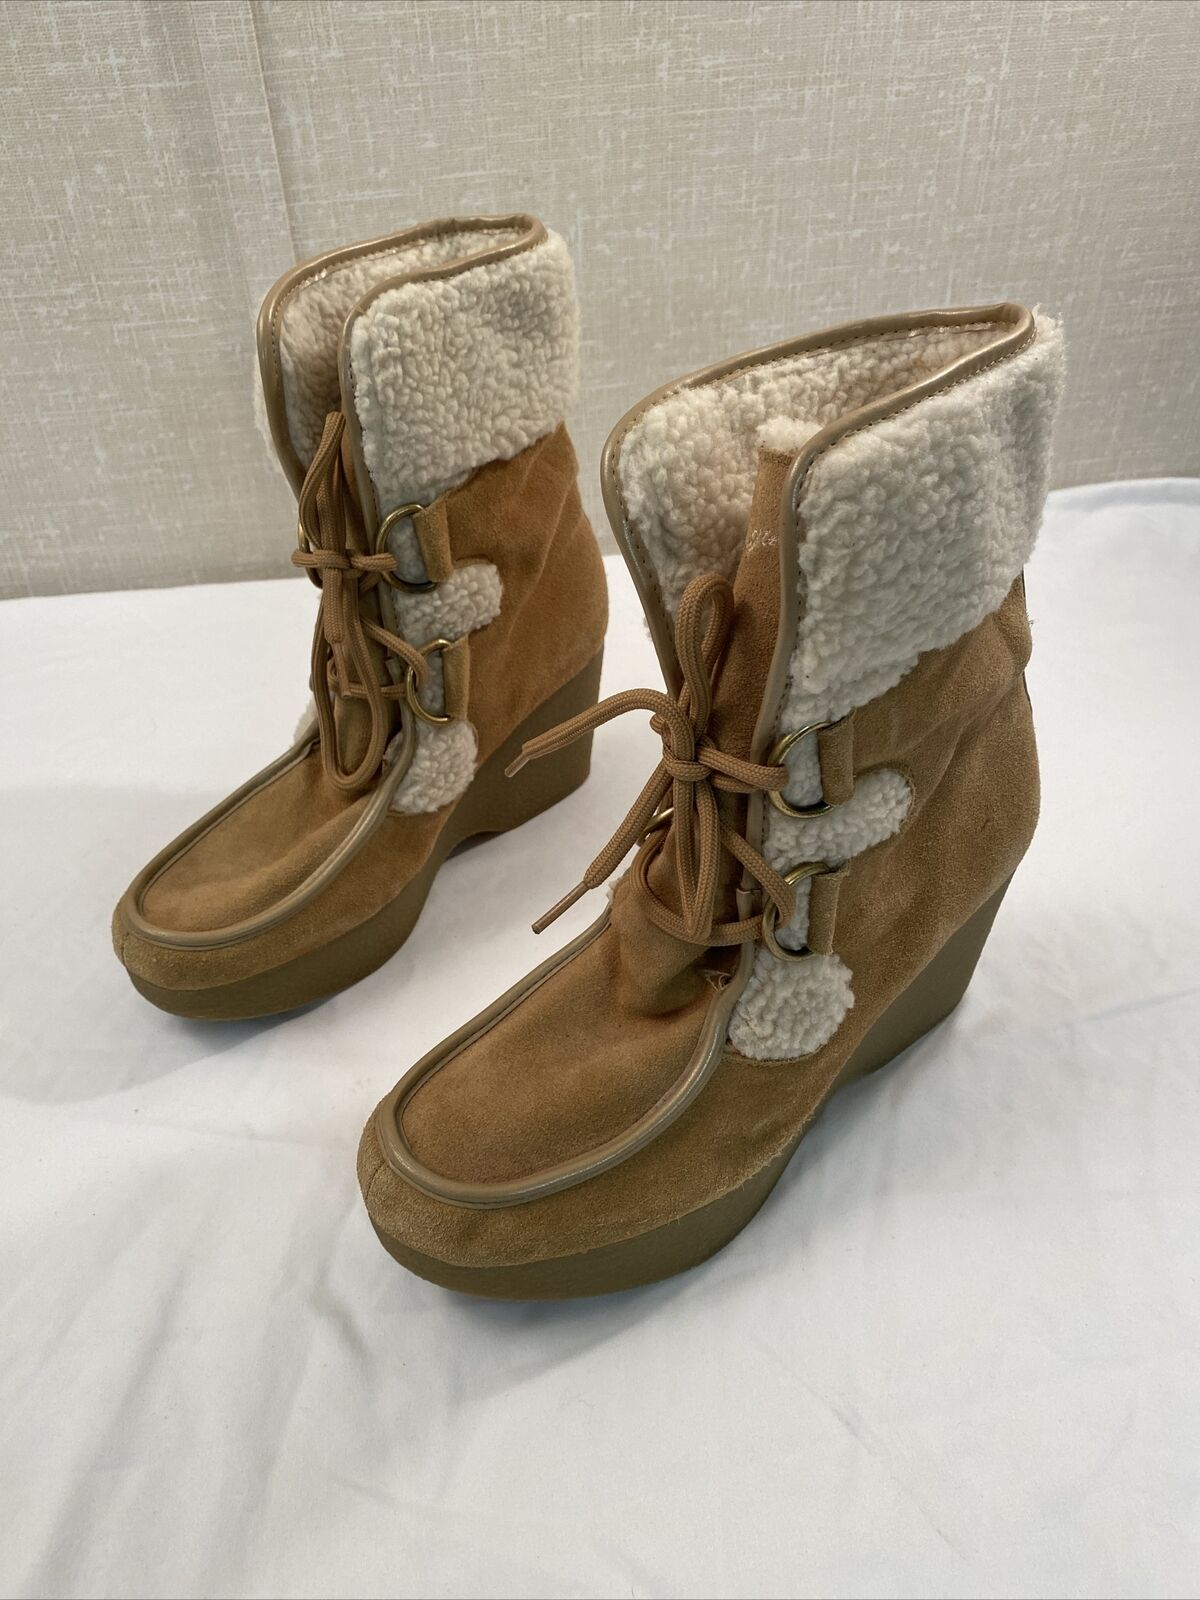 tommy hilfiger Brown boots women 8M - image 5